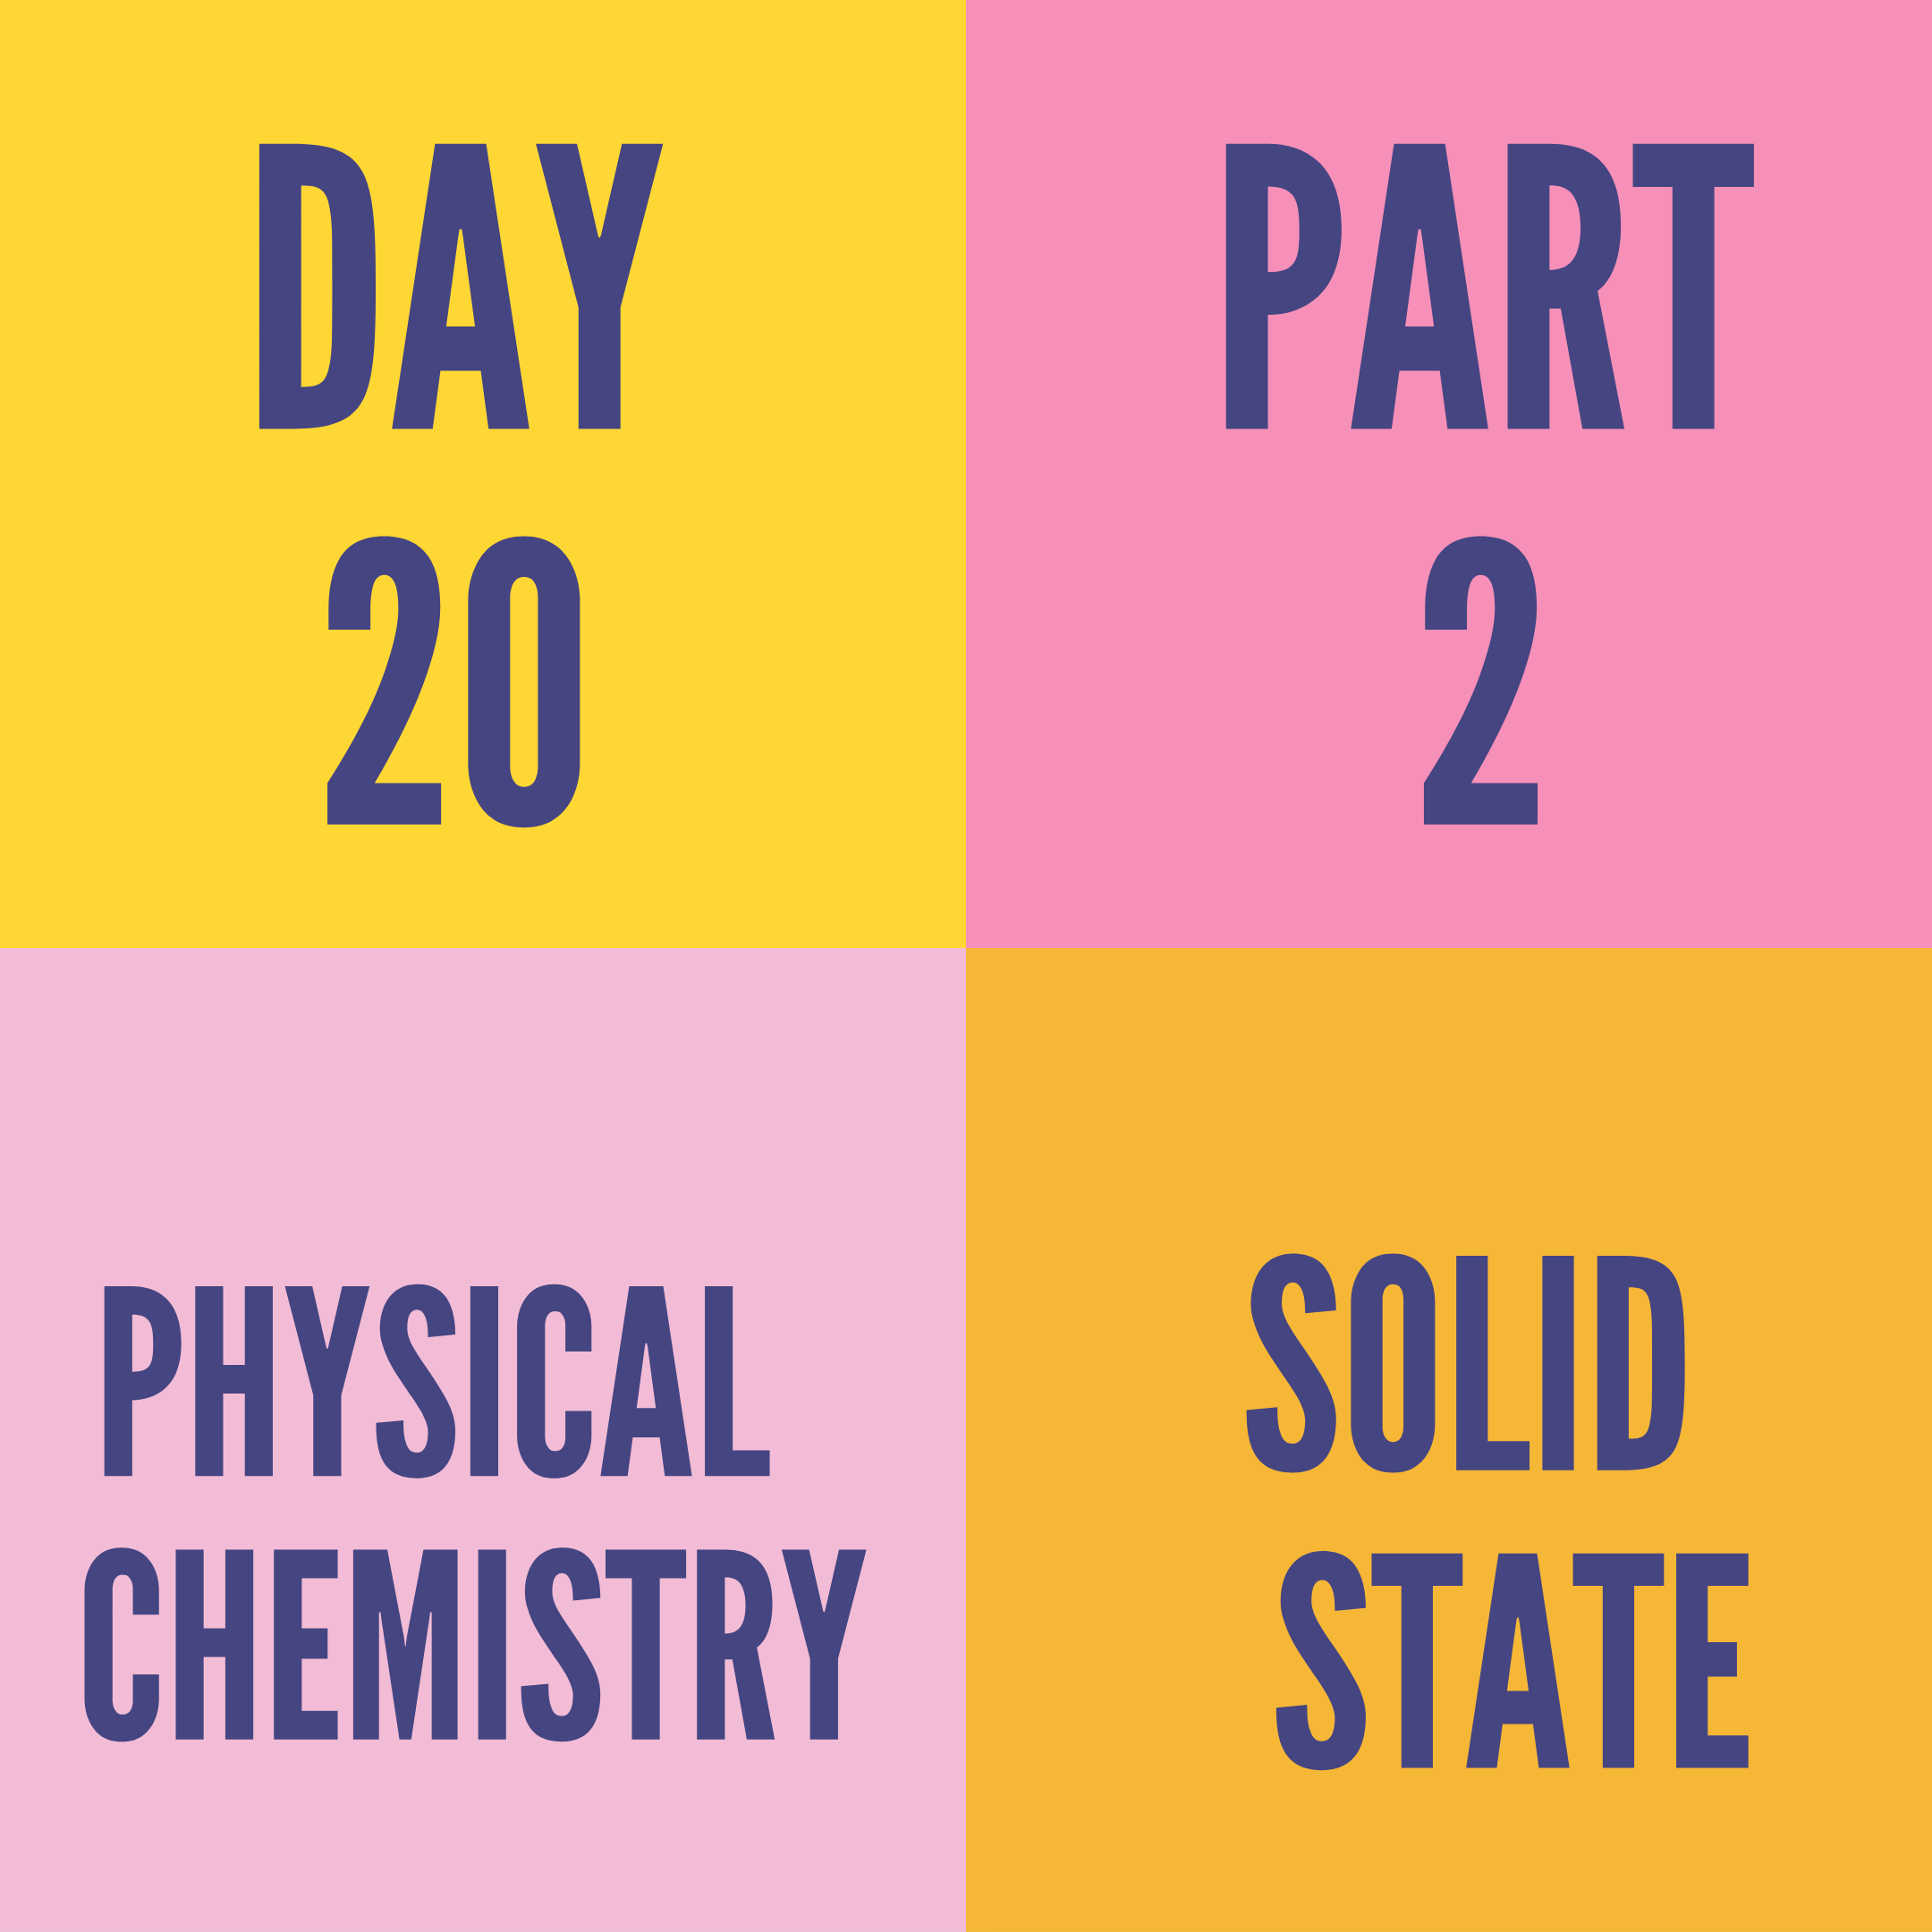 DAY-20 PART-2 SOLID STATE